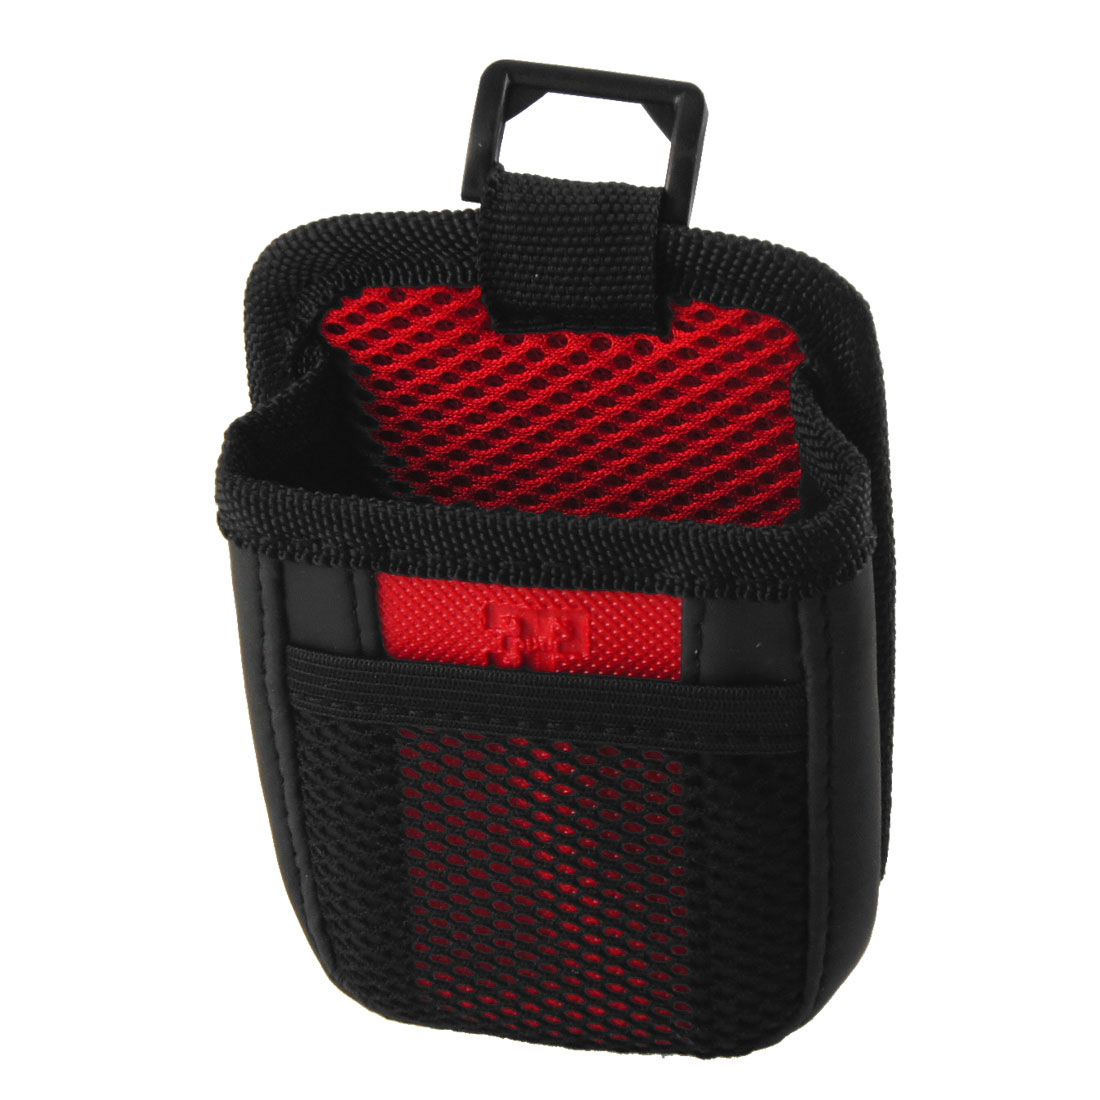 Unique Bargains Vehicle Car Mesh Cell Phone MP3 MP4 Pouch Holder Black Red